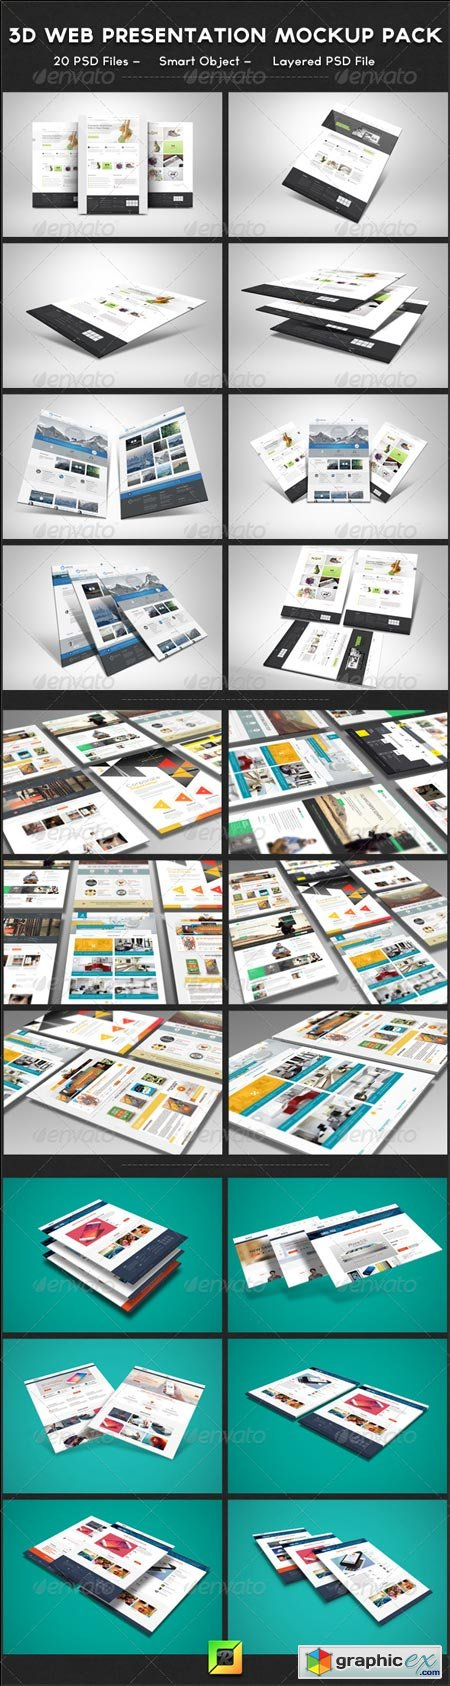 3D Web Presentation Mockup Bundle 6216722